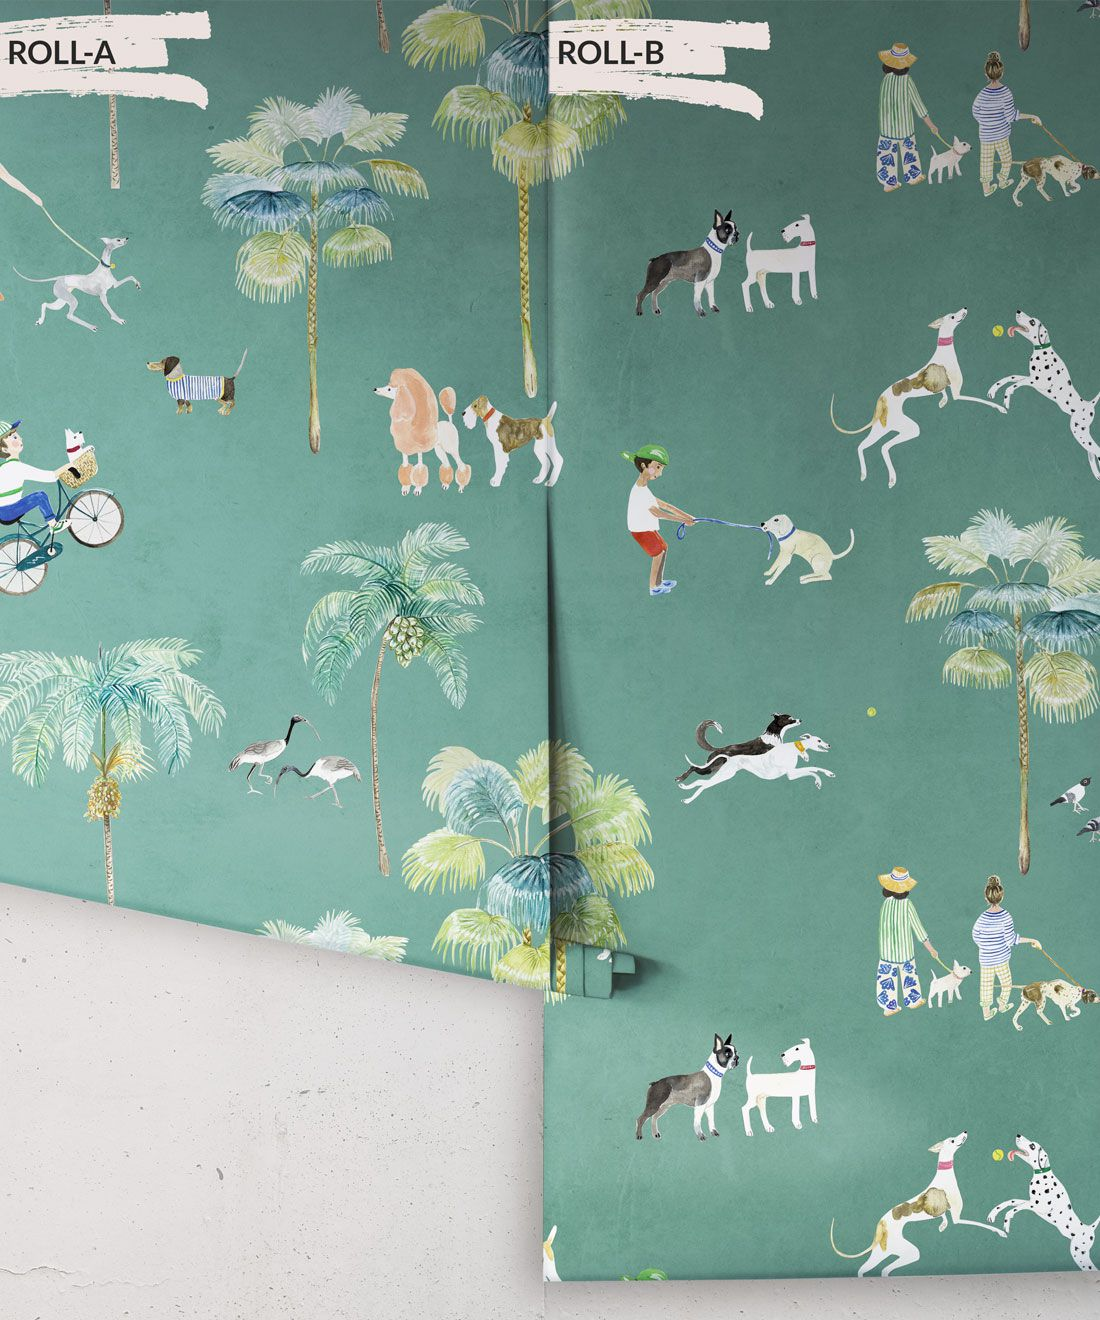 At The Dog Park Wallpaper • Kids Wallpaper • Turquoise • Rolls